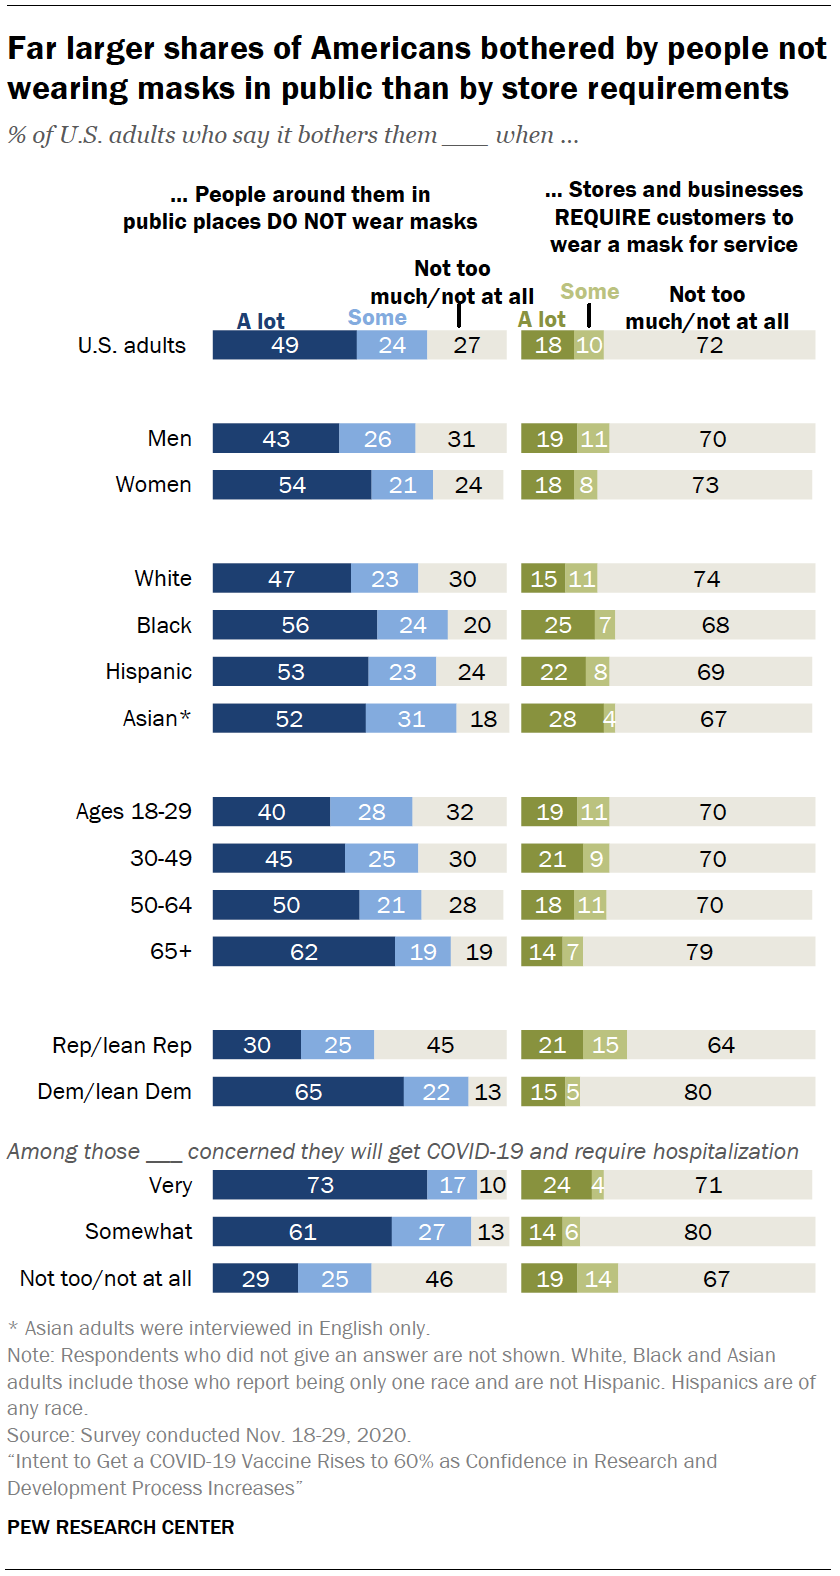 Chart shows far larger shares of Americans bothered by people not wearing masks in public than by store requirements